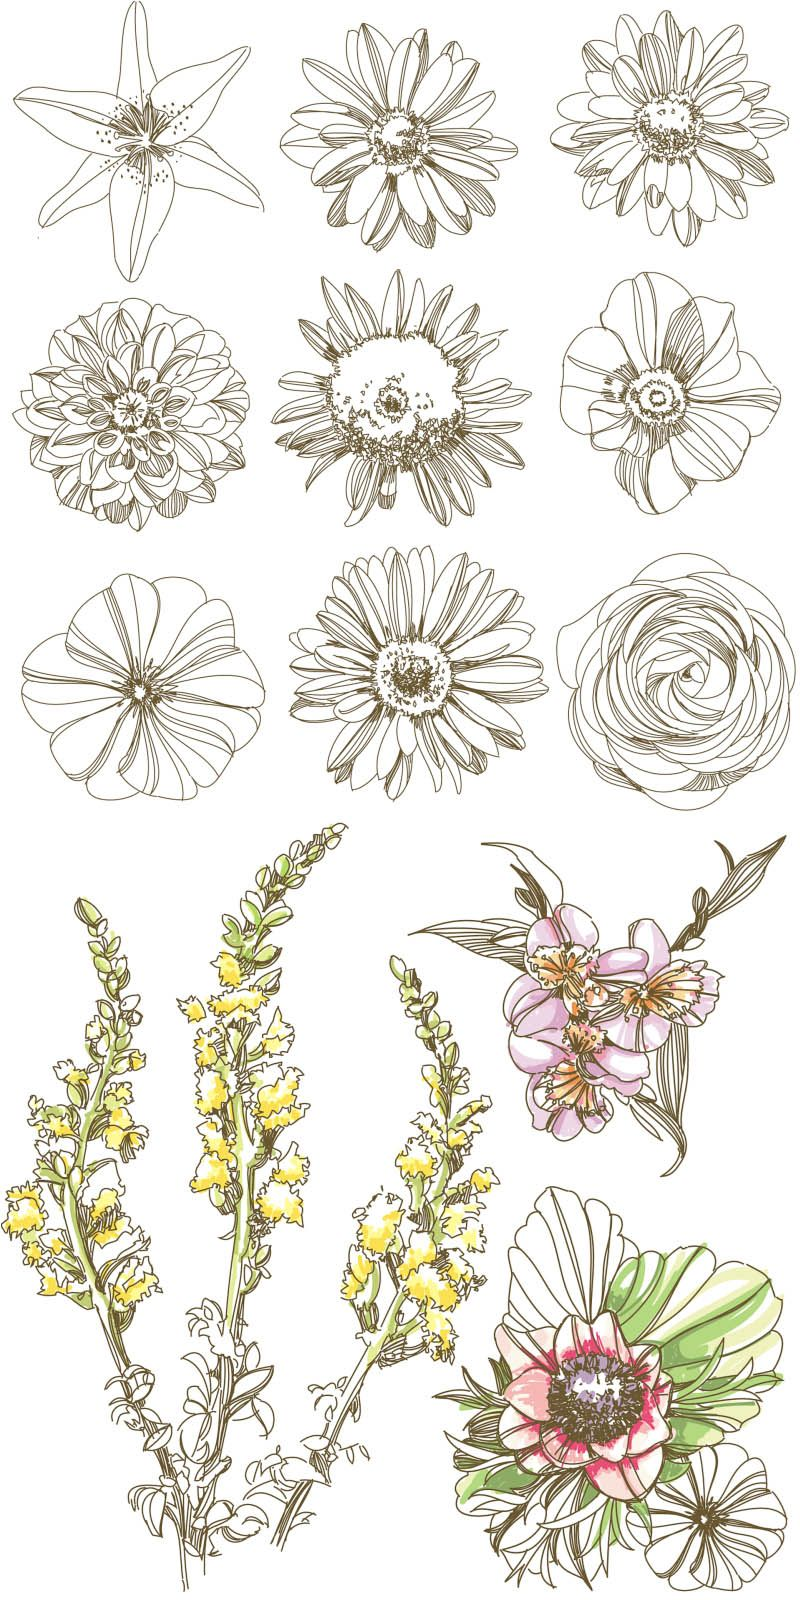 800x1600 May Be Helpful For My Flowers Watercolour For Christine Tats